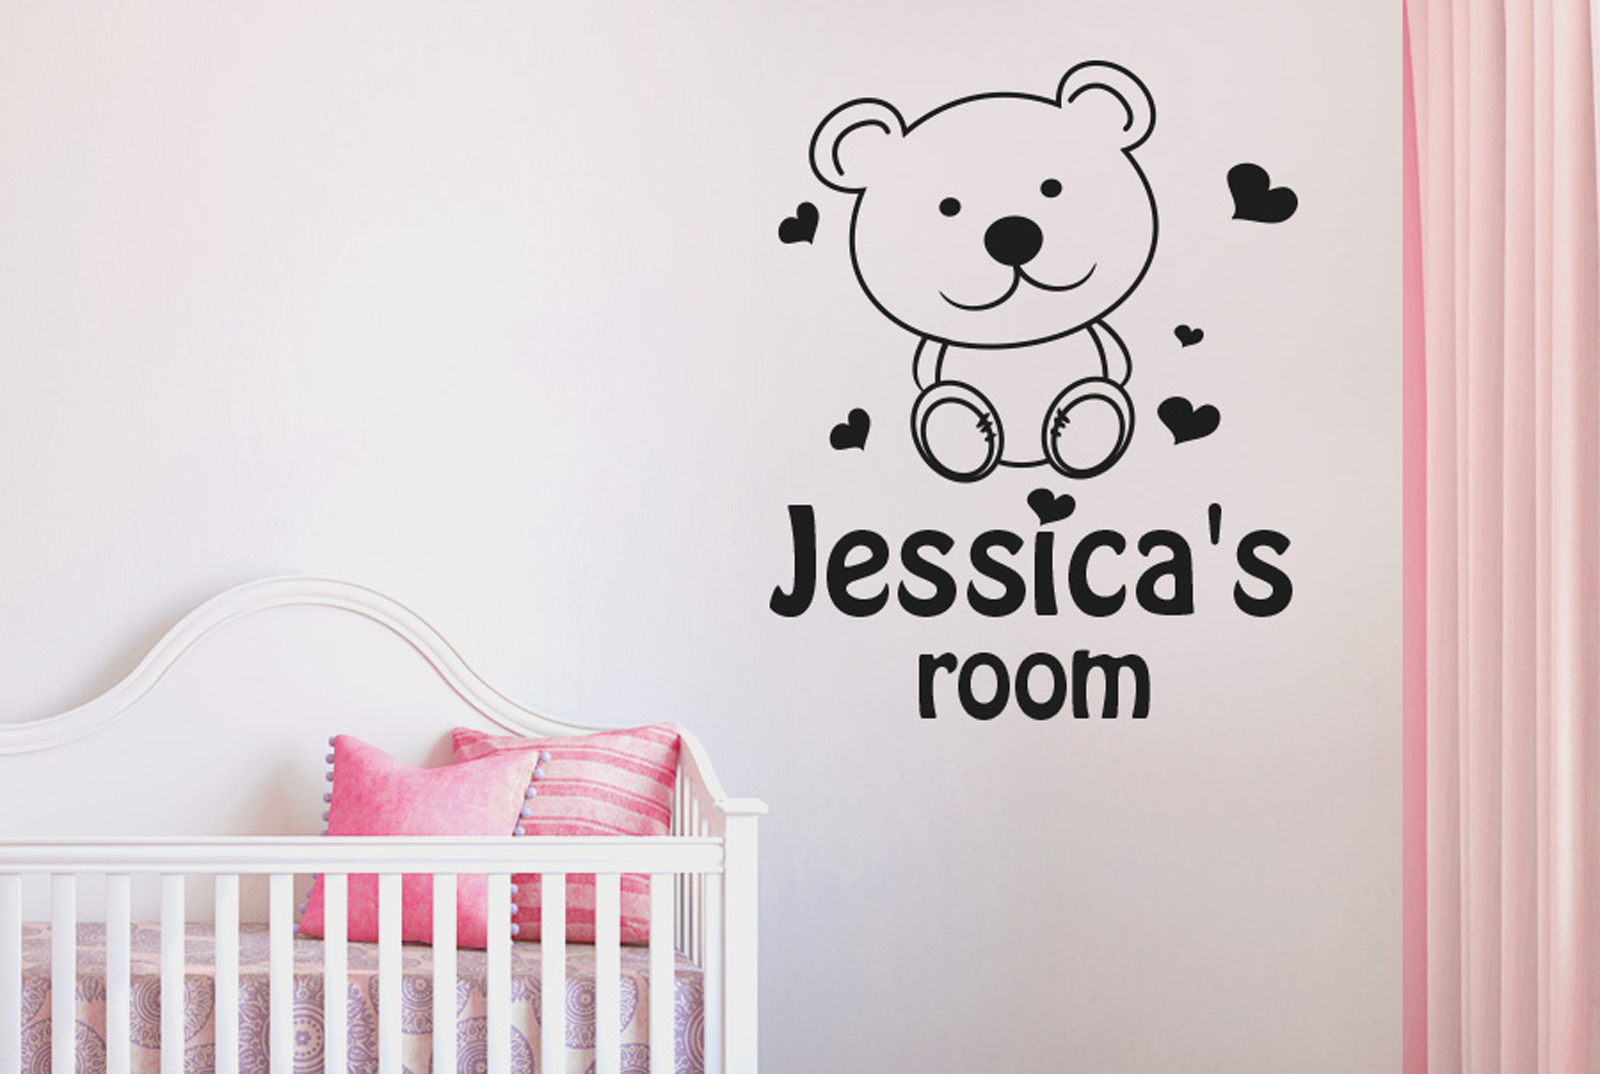 To acquire 25 wall cute art for kids room picture trends